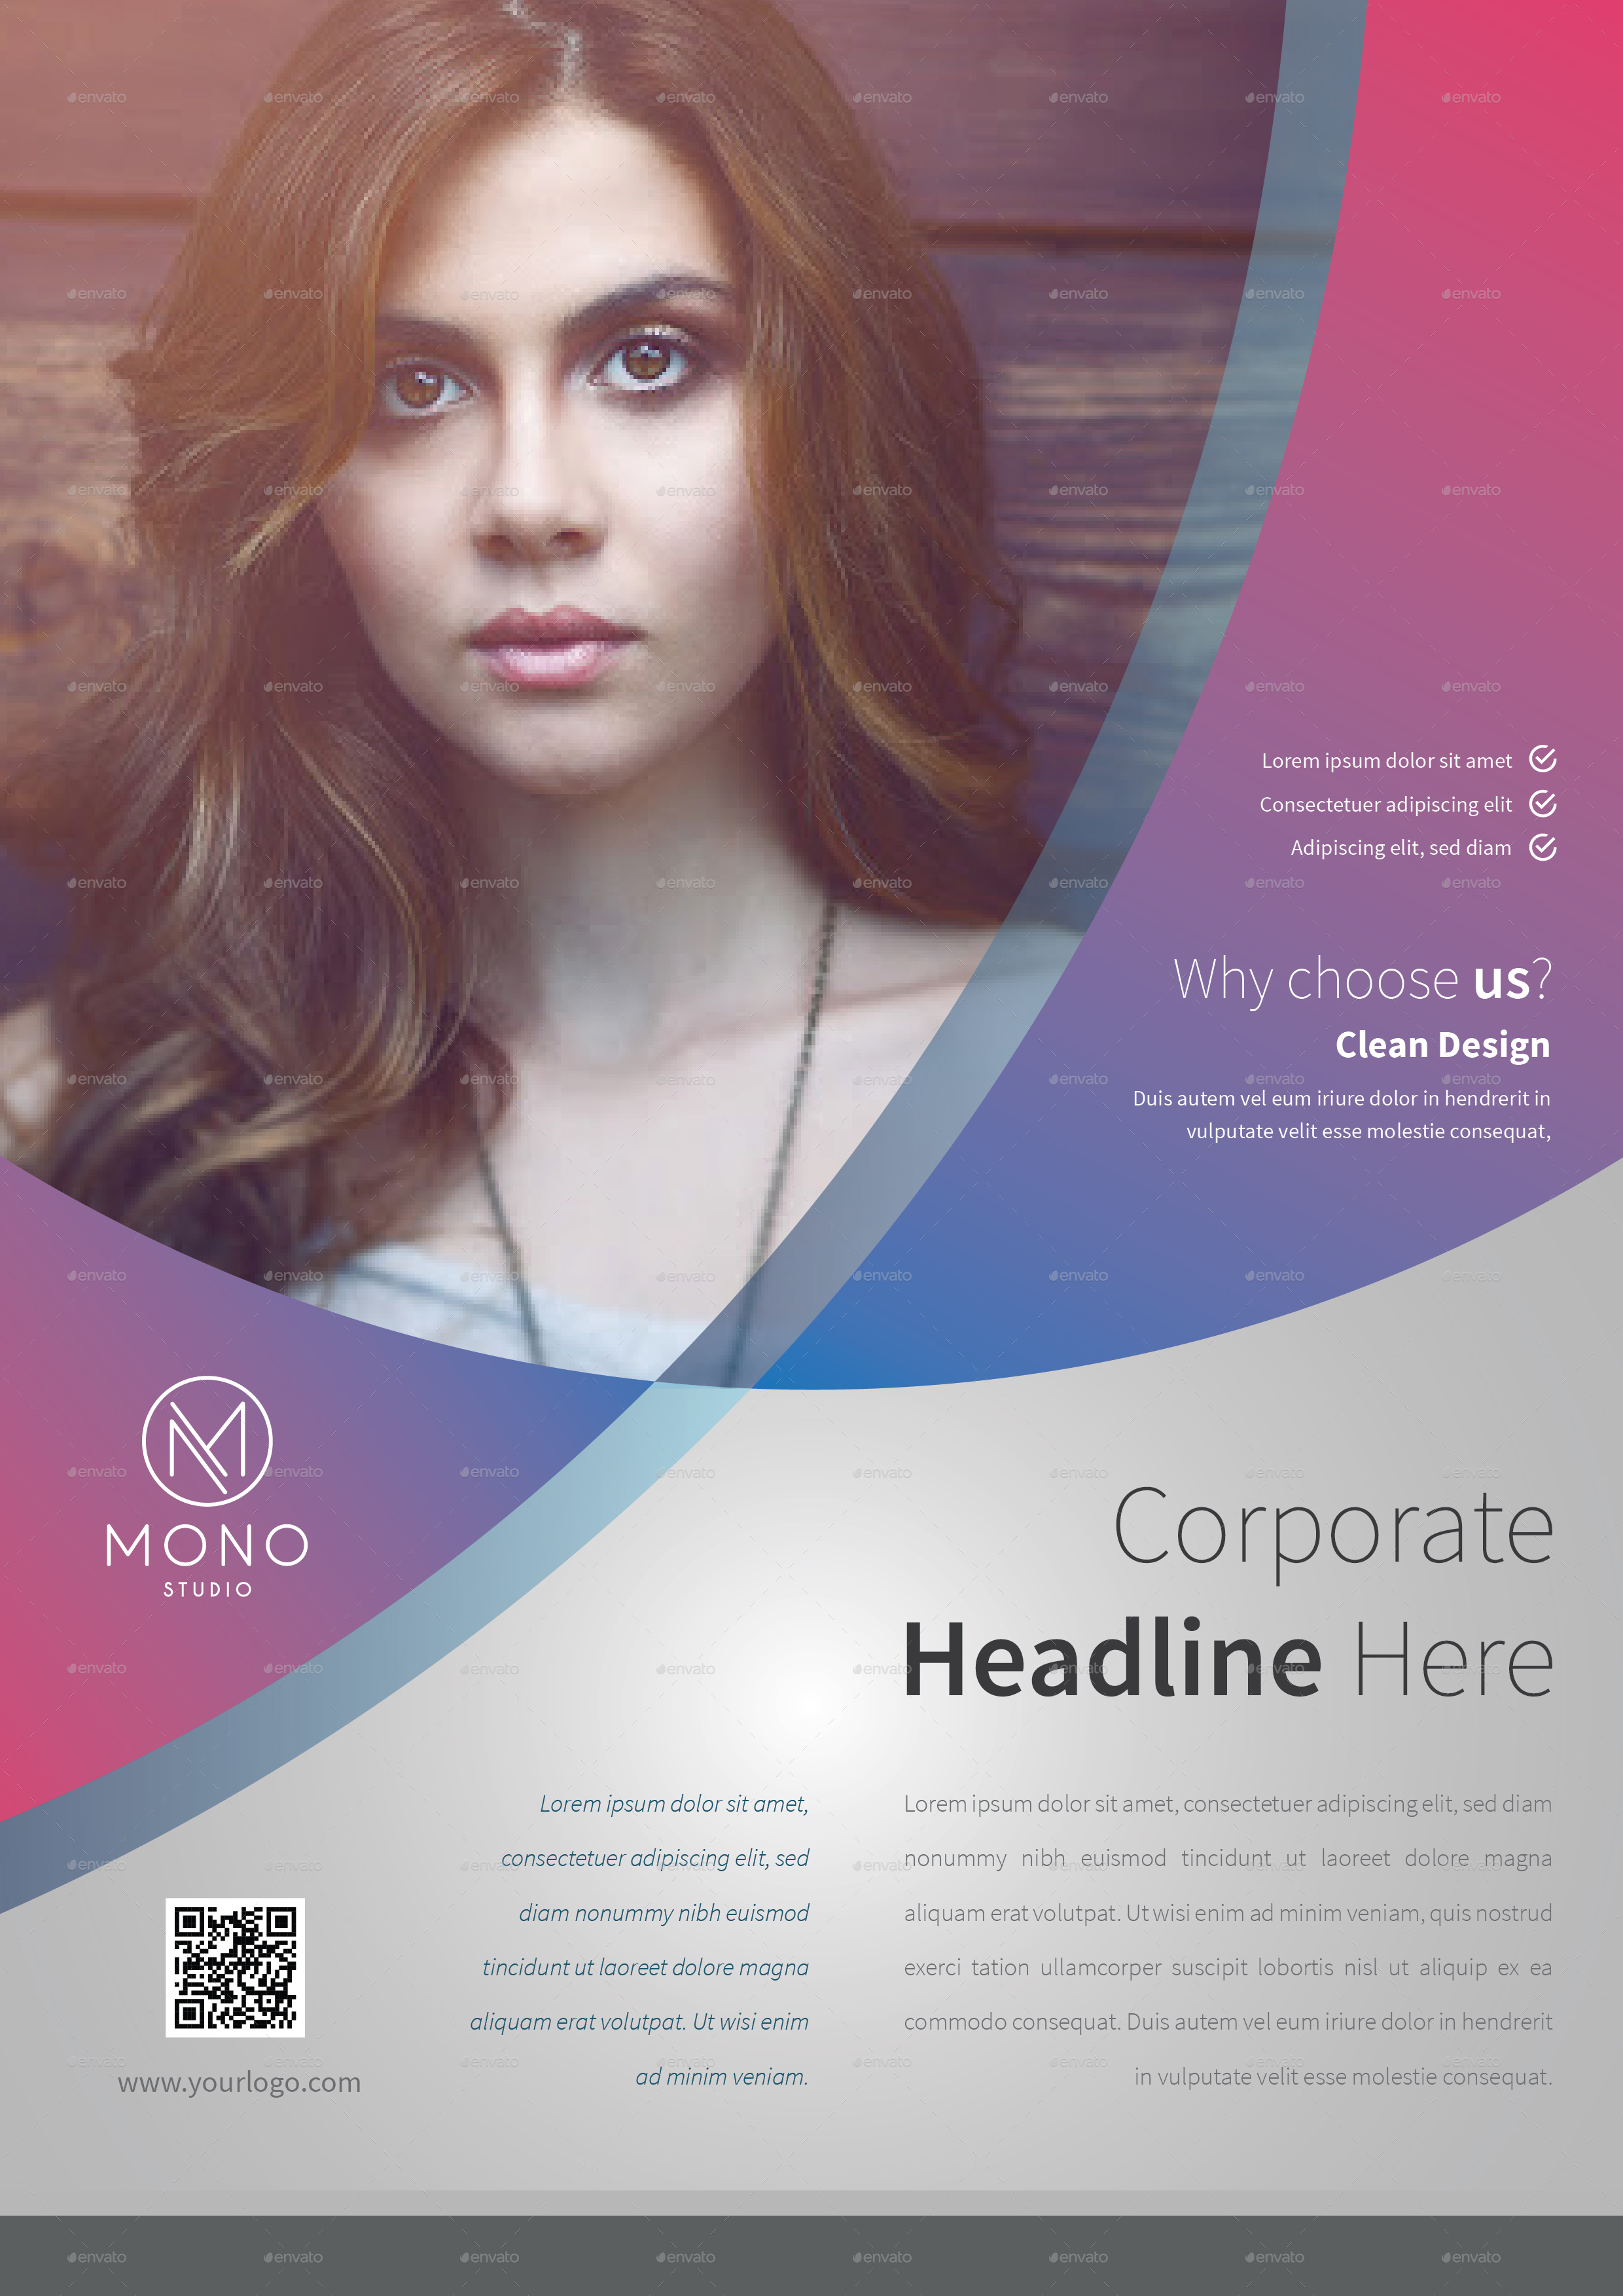 corporate flyer template set by monogrph graphicriver preview image set corporate flyer template 8a 01 jpg preview image set corporate flyer template 9b 01 jpg